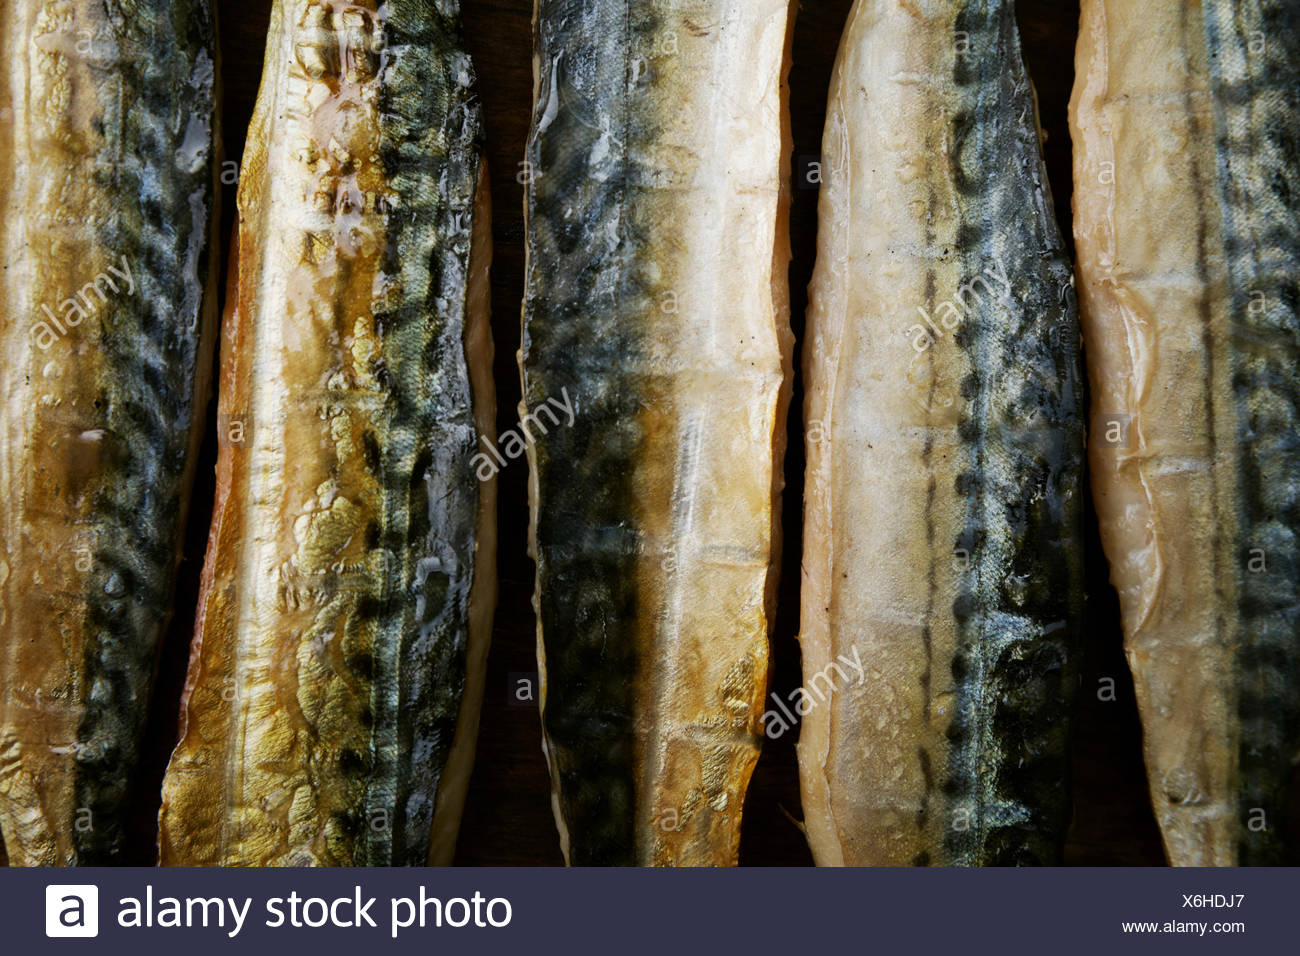 Smoked fish fillets laid out in a row. - Stock Image